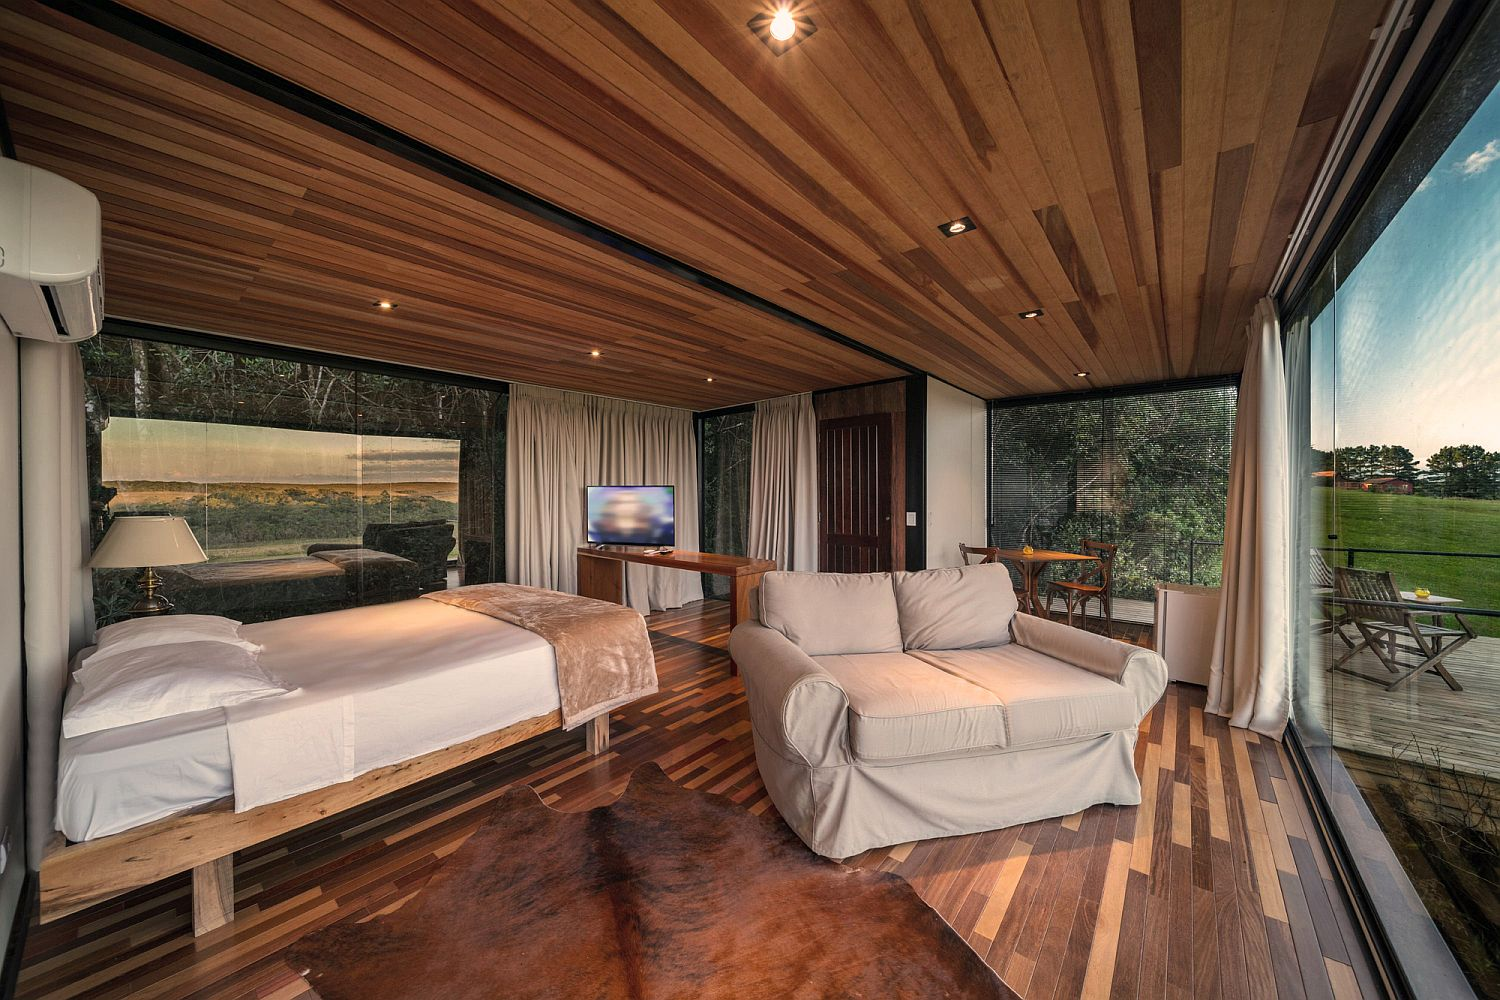 Wood and glass bedroom of the cabin with wonderful view of the landscape around it